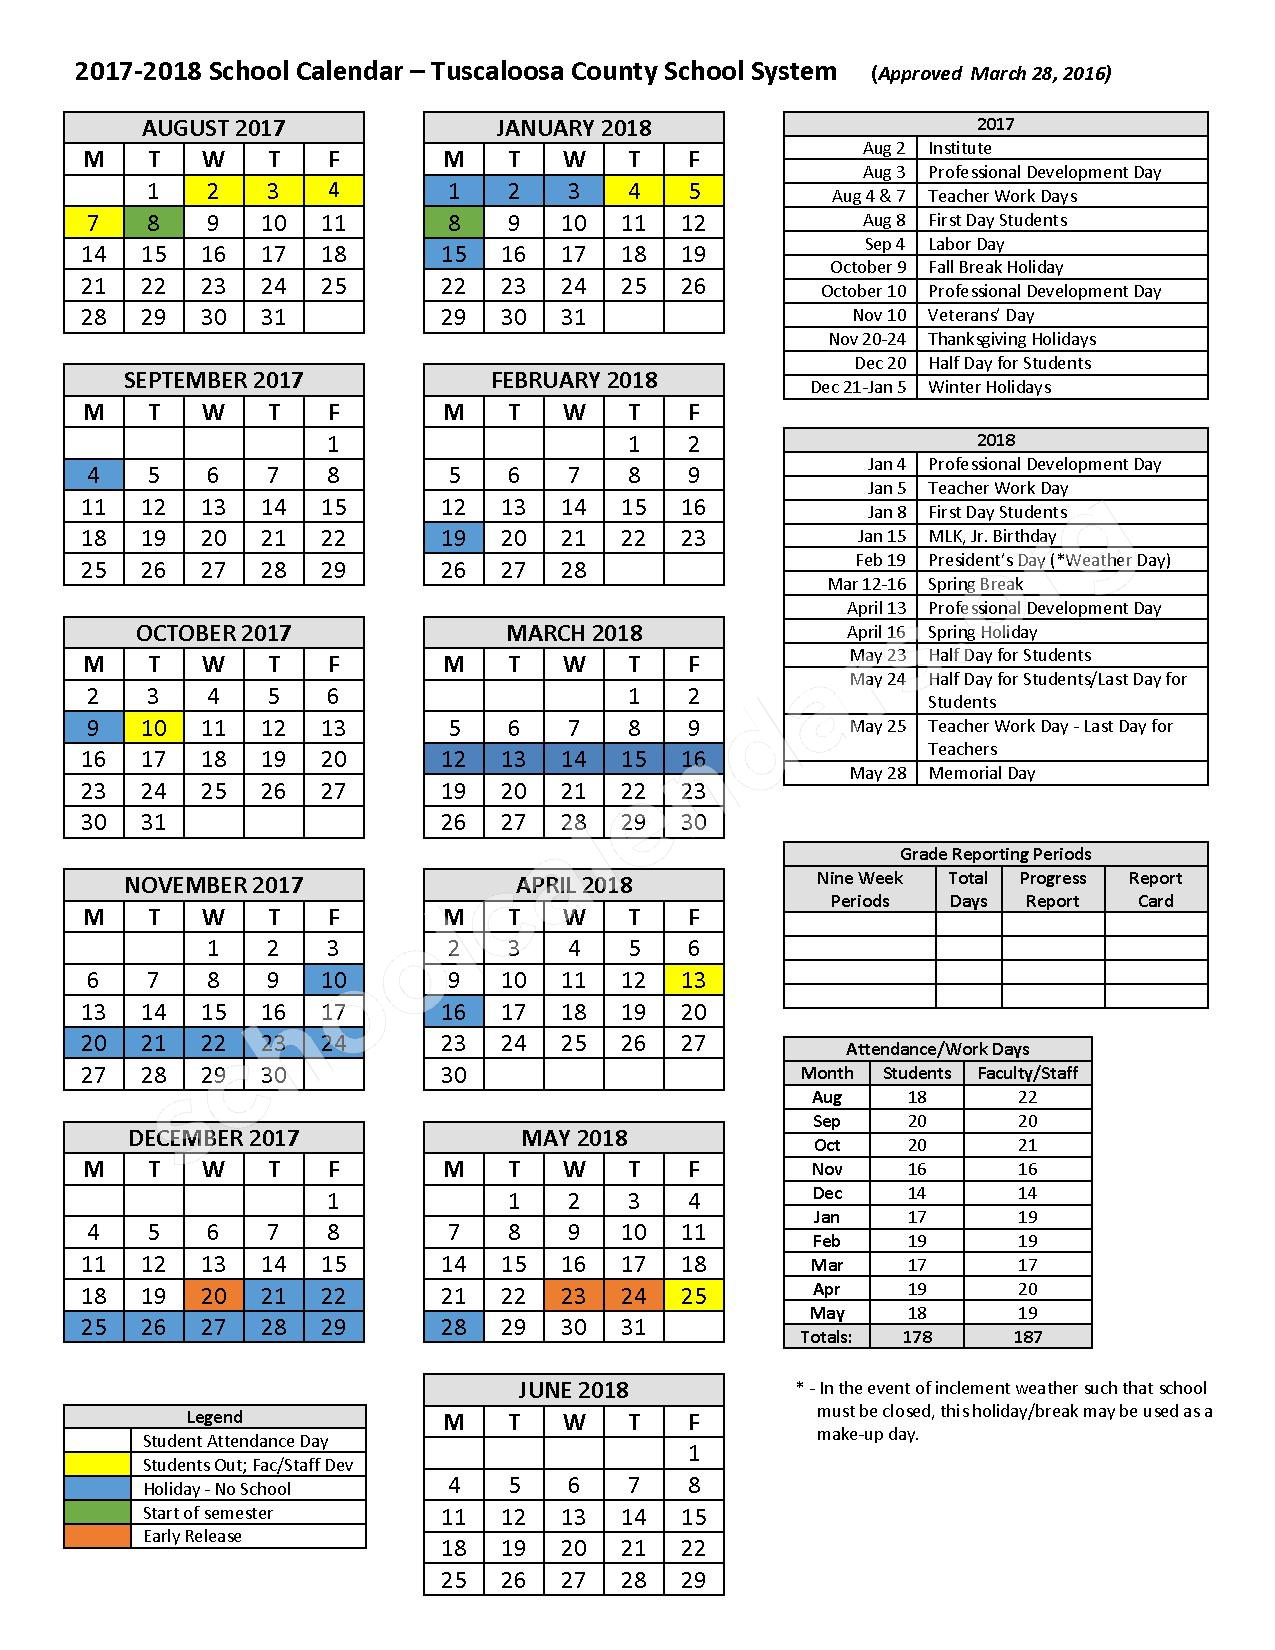 2017 - 2018 School Calendar – Davis-Emerson Middle School – page 1